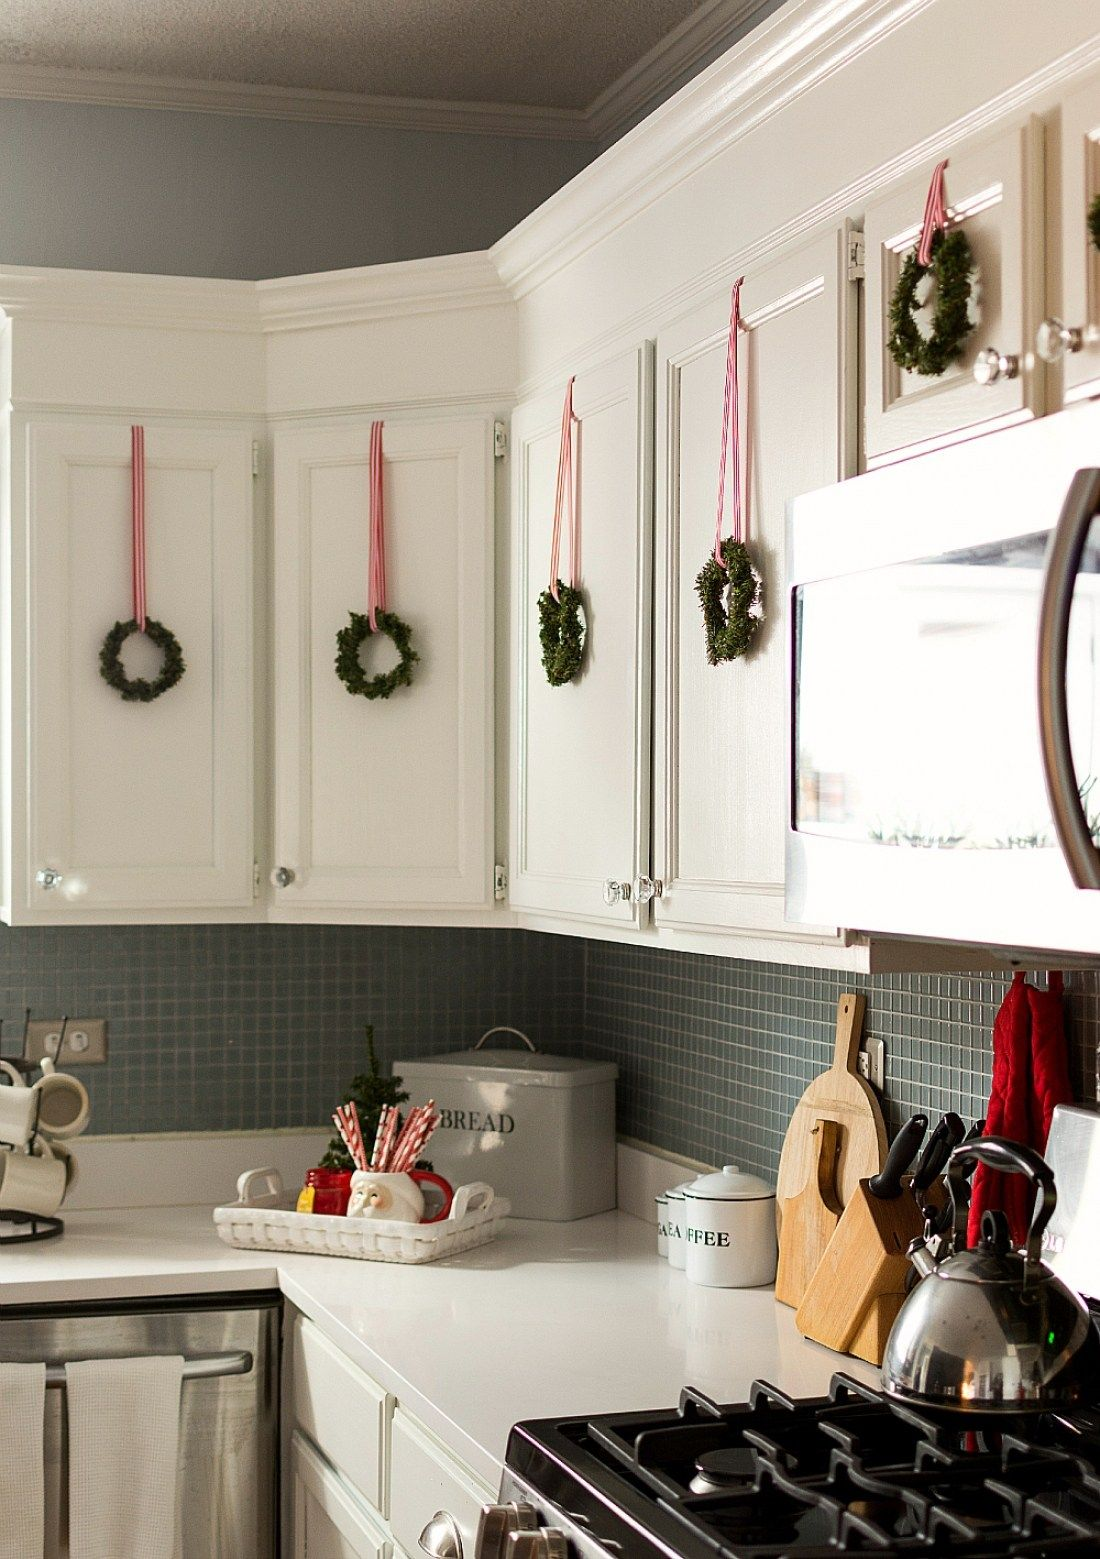 30 Christmas Decorating Ideas For The Kitchen | Decor crafts ...